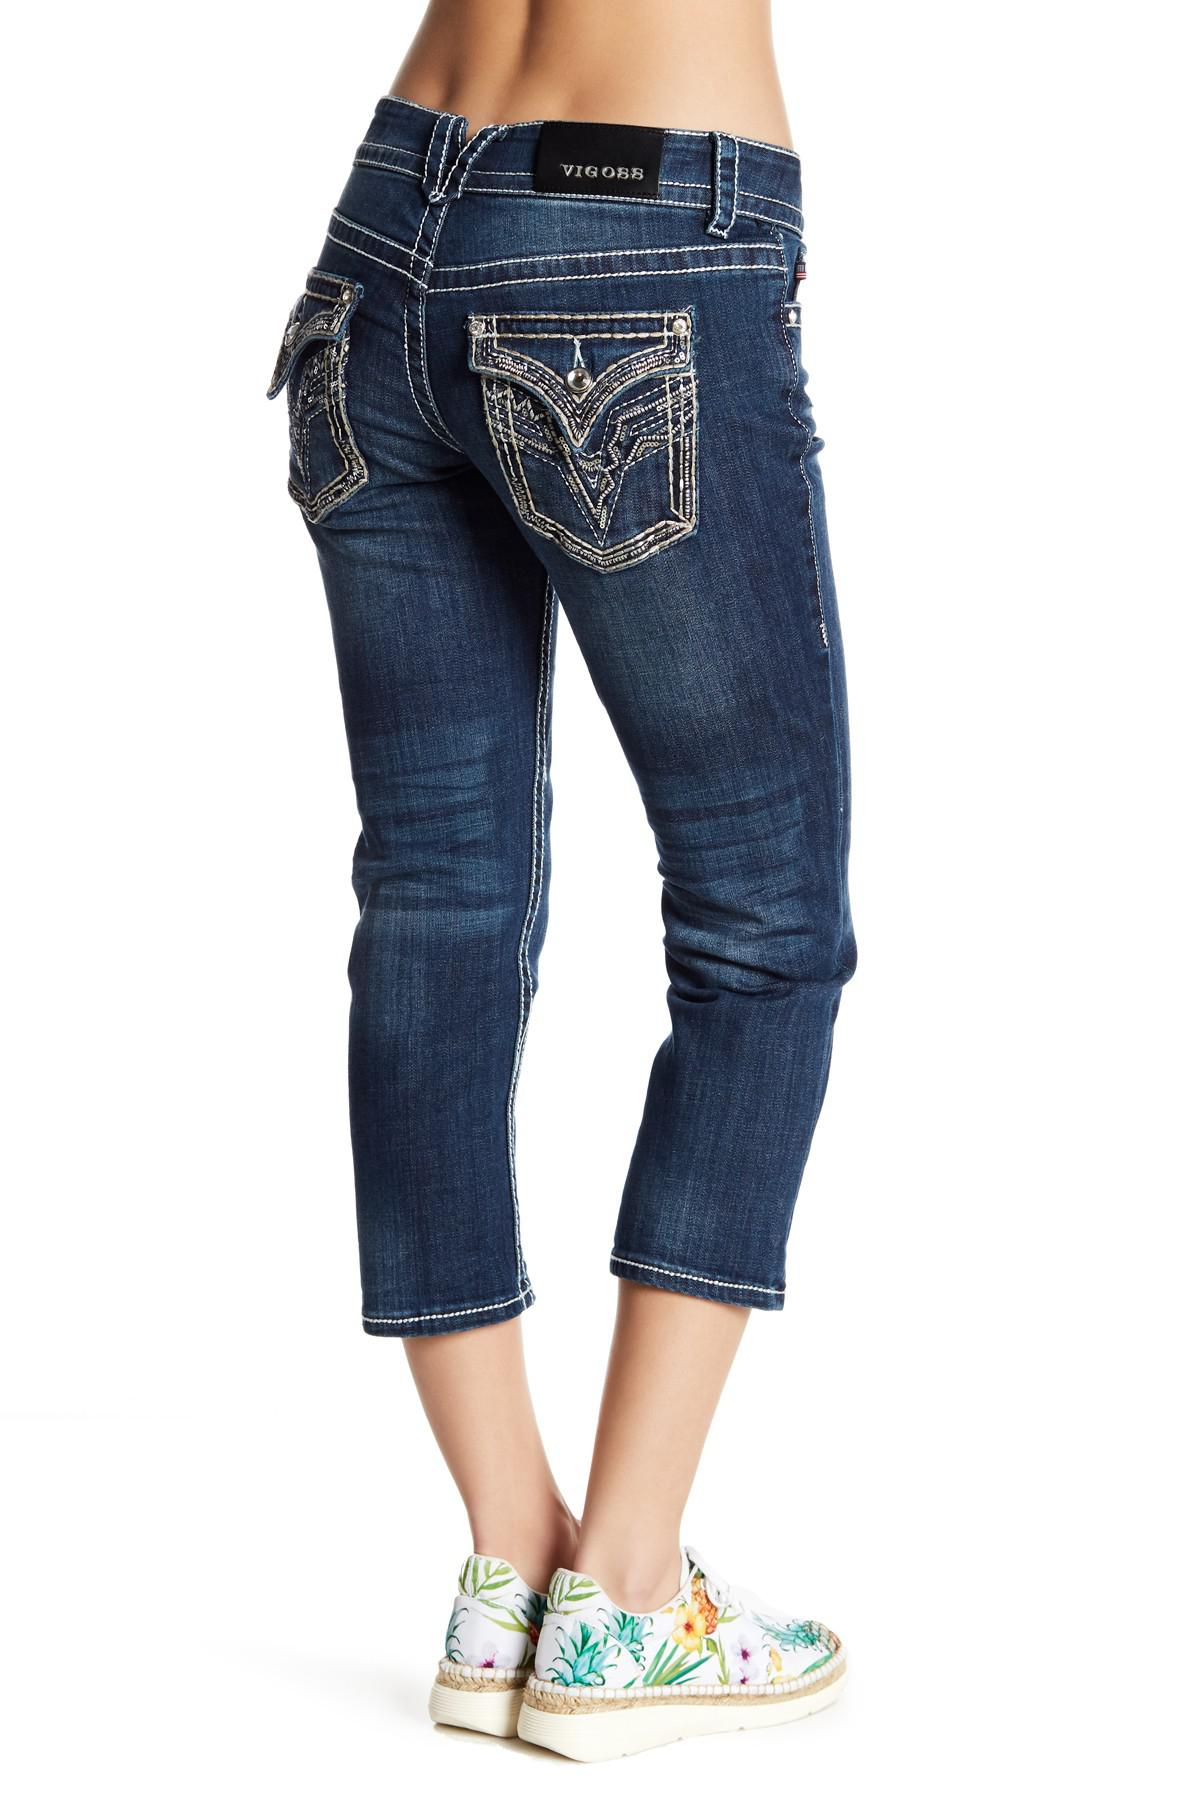 348a570779a Vigoss Embellished Topstitched Capri Jeans in Blue - Lyst